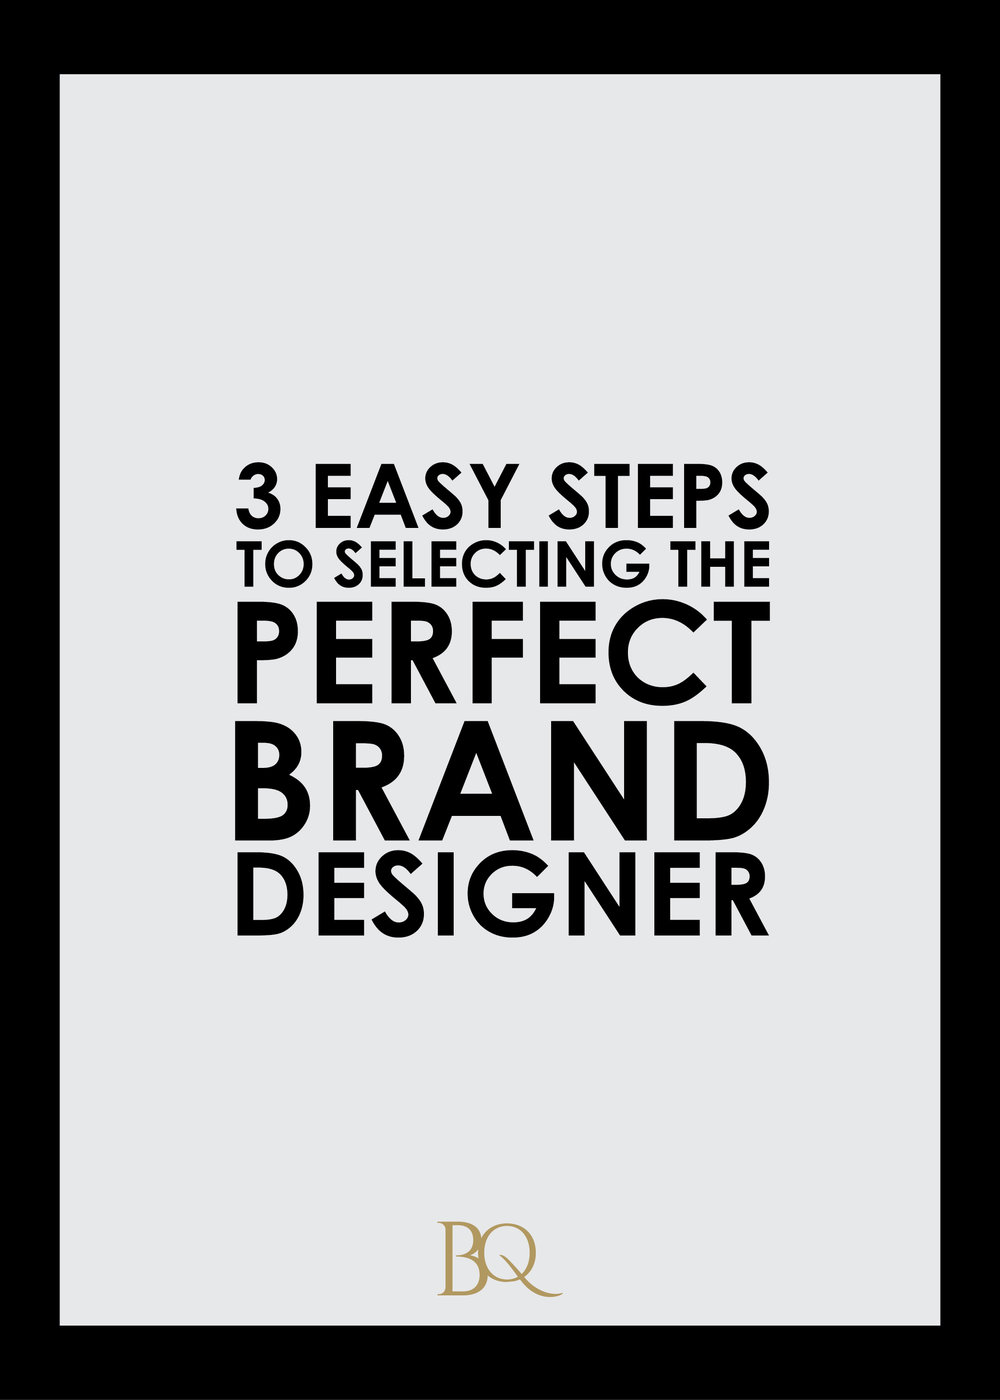 3 Easy Steps to Selecting the Perfect Brand Designer